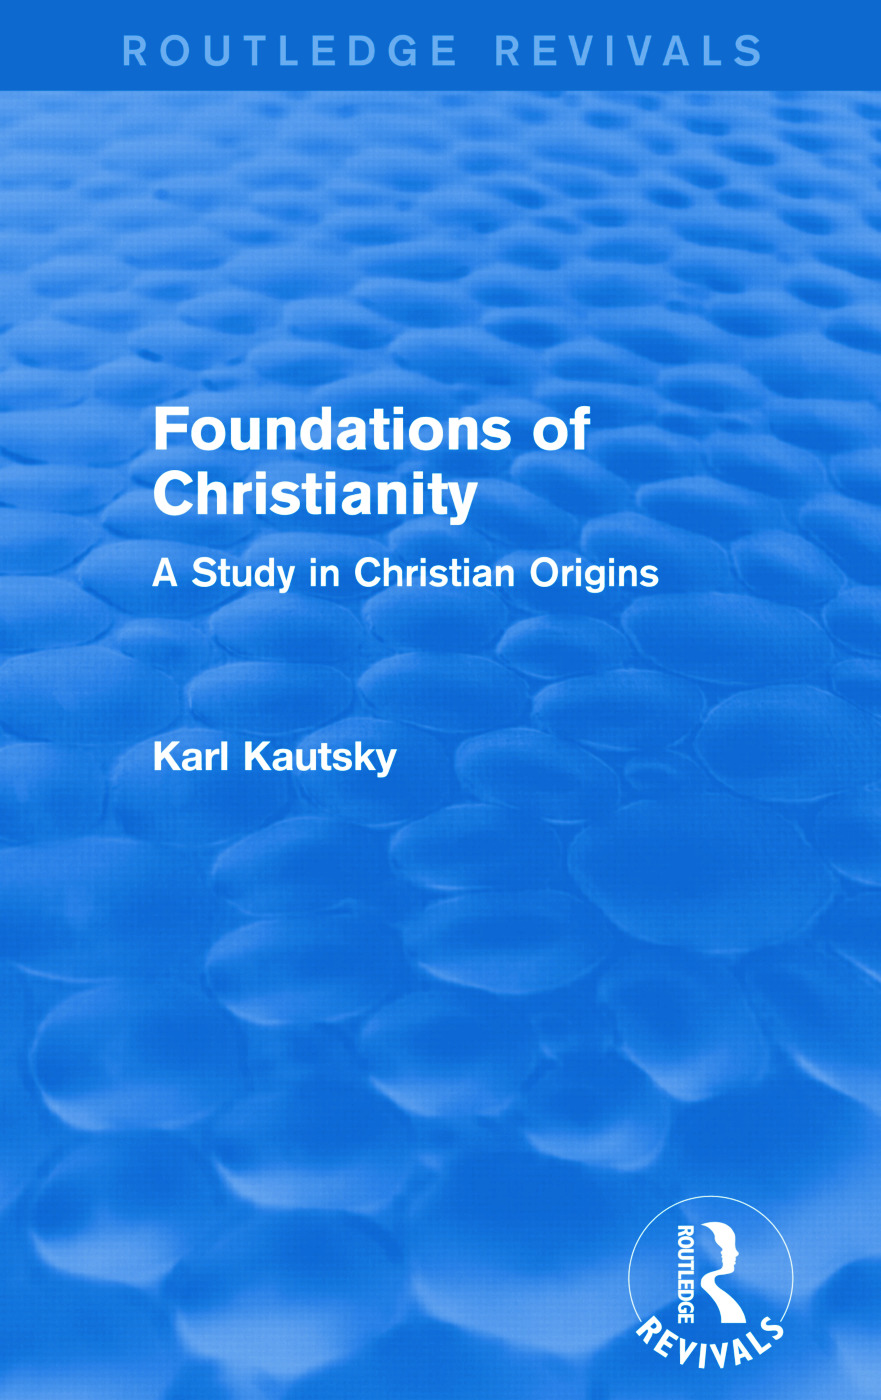 Foundations of Christianity (Routledge Revivals): A Study in Christian Origins, 1st Edition (Paperback) book cover